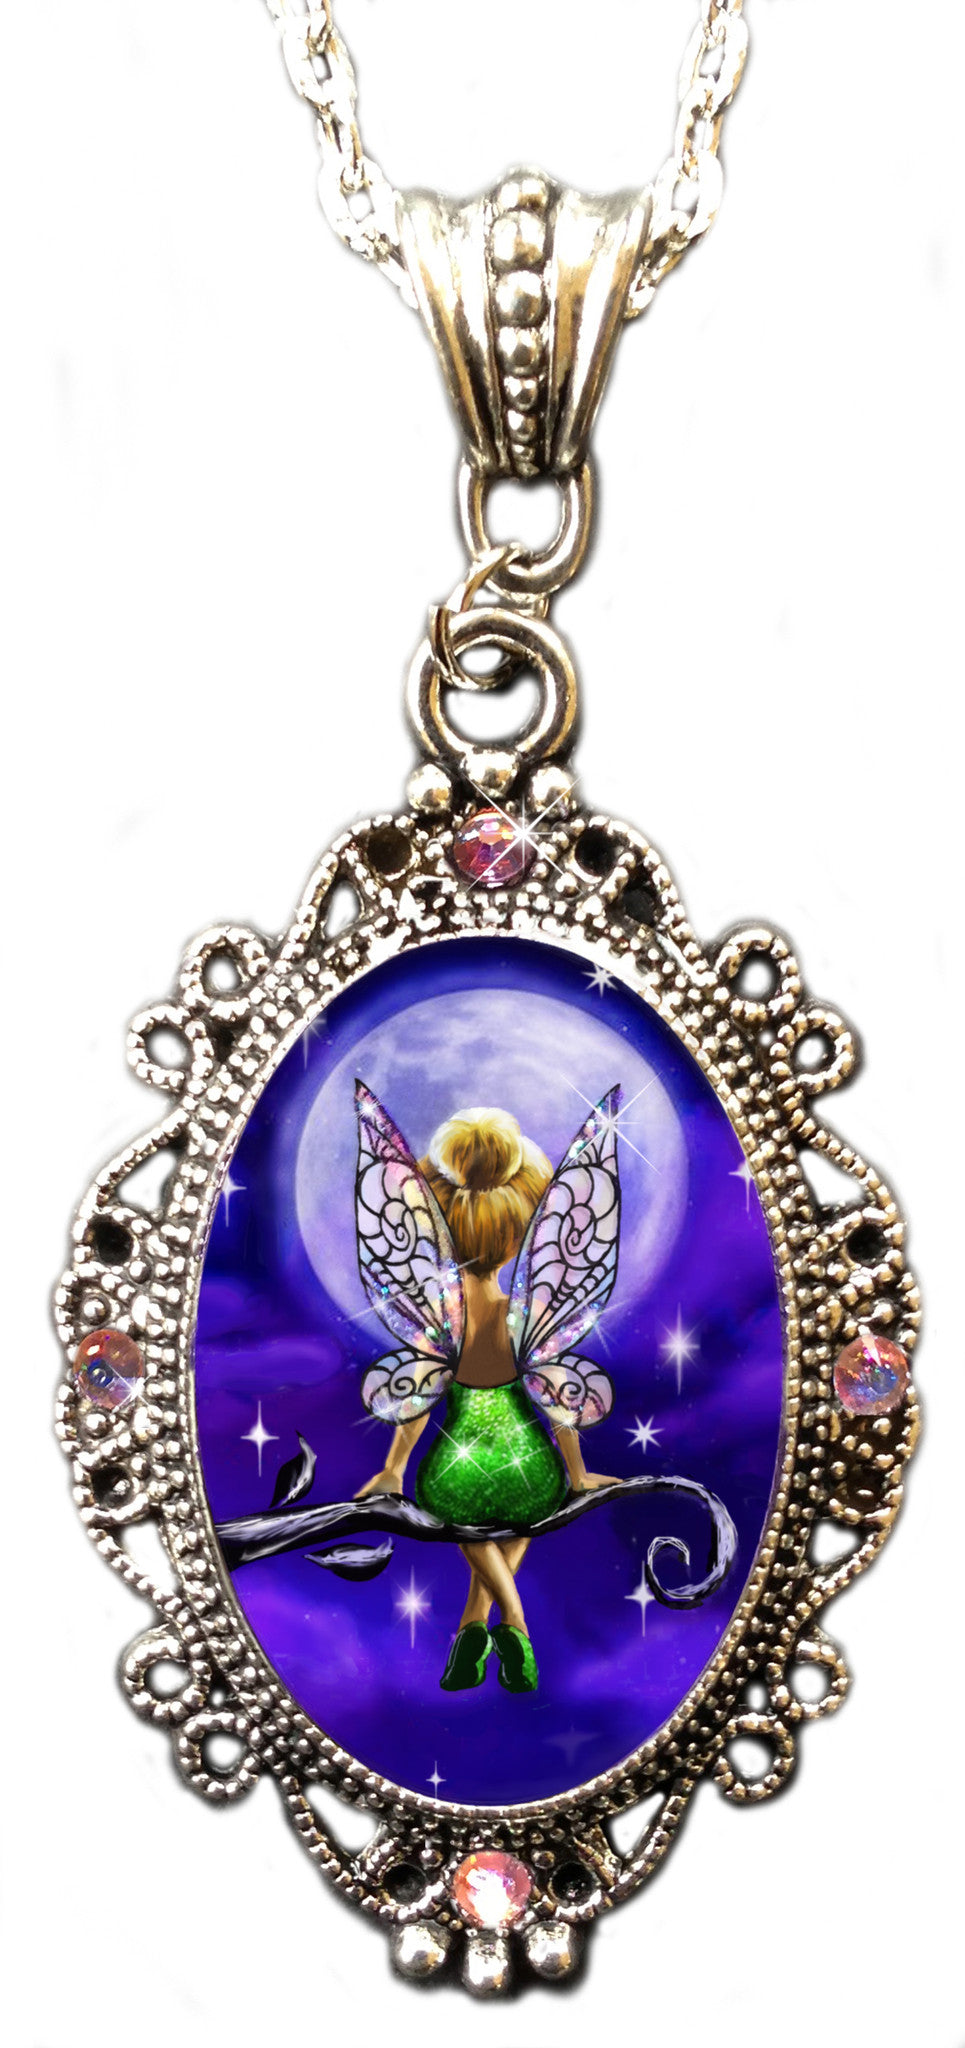 charm product danielle gift star gif idea p stones and fairy peace wisdom inner necklace for moon amethyst spiritual